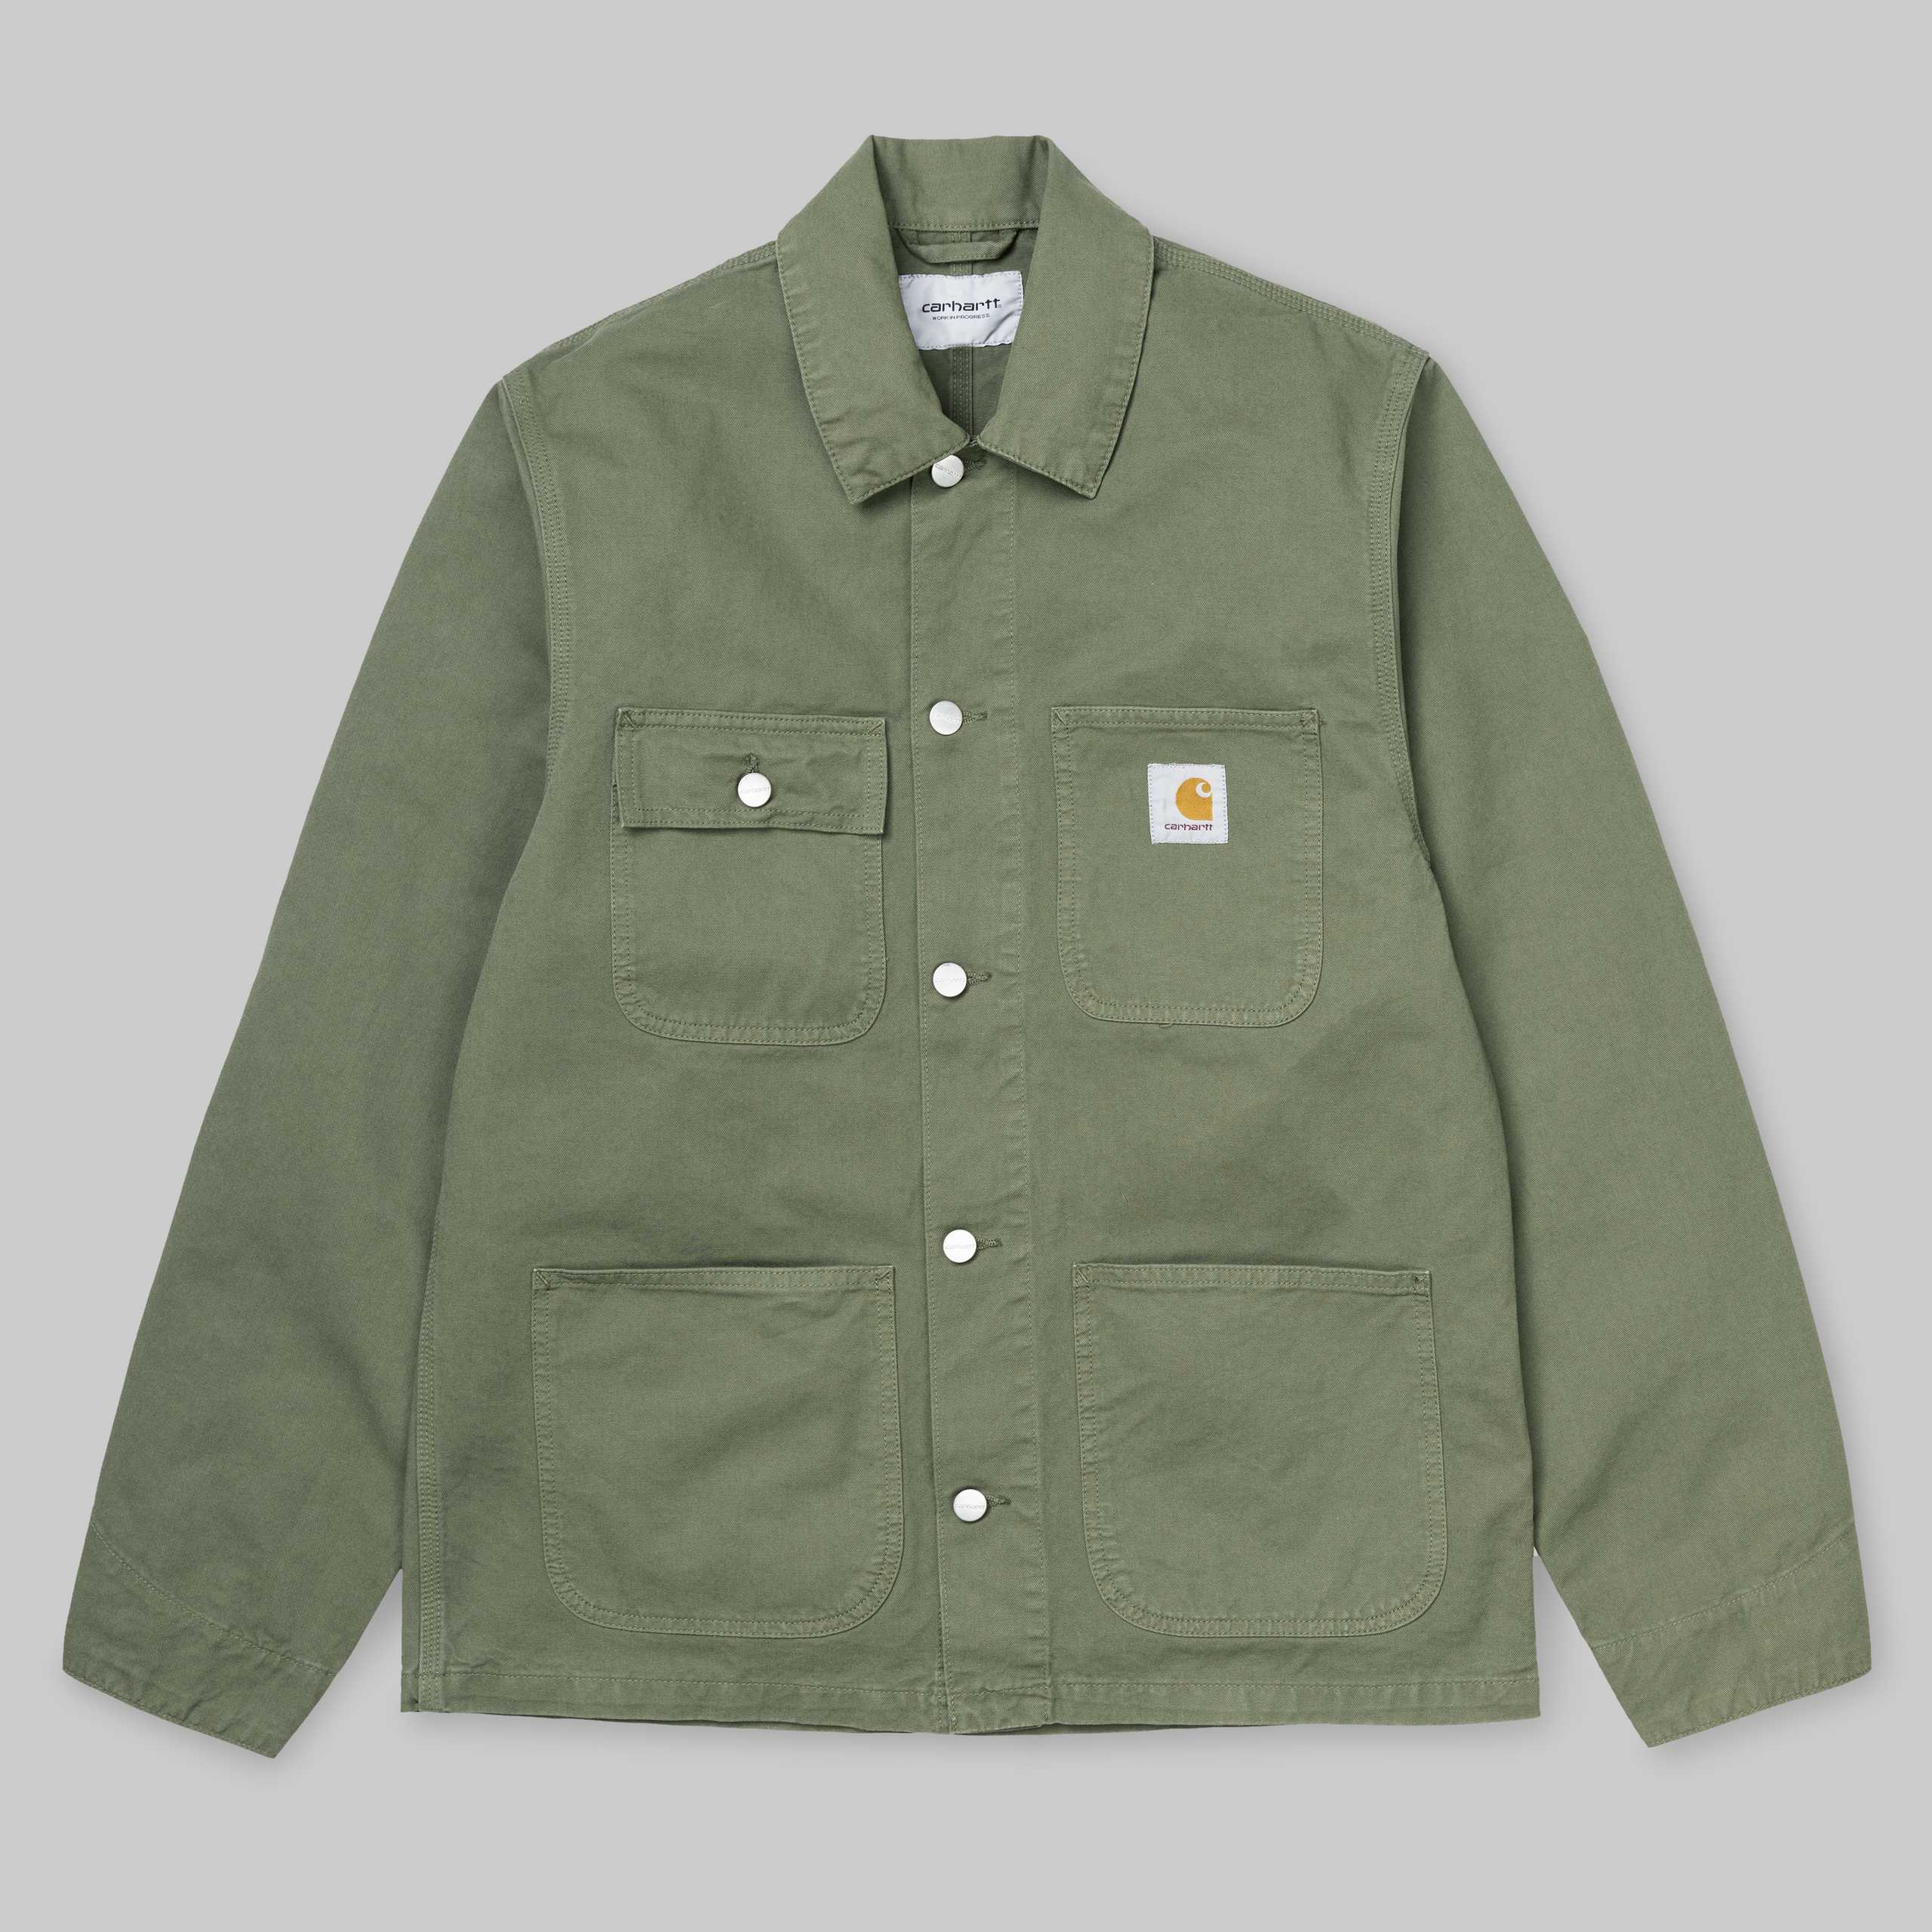 Carhartt WIP - Carhartt Michigan Coat - Dollar Green